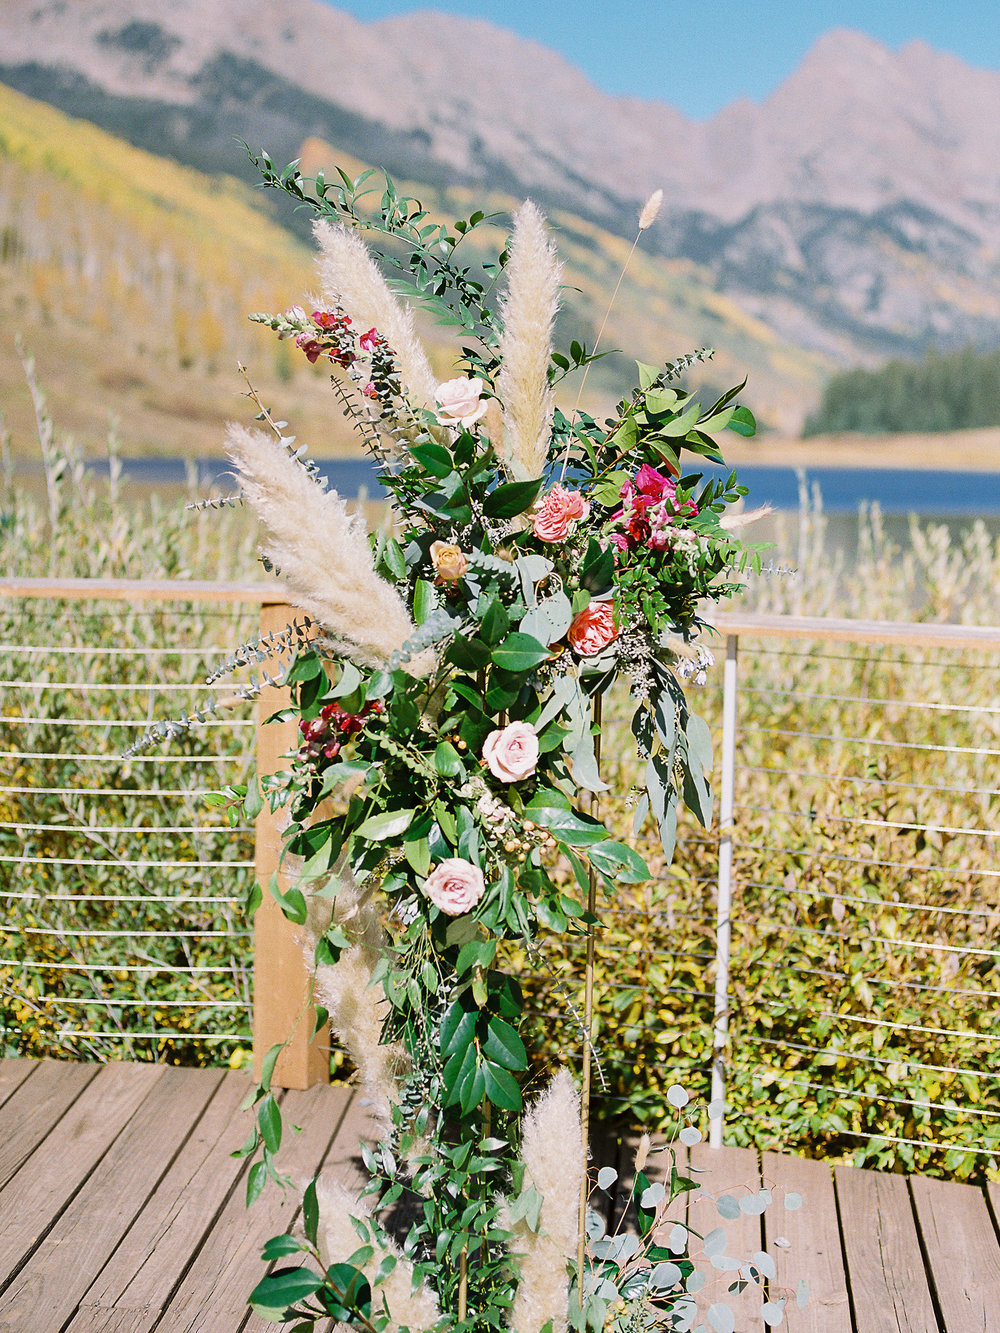 Flowers by Lace + Lilies, wedding flowers, welcome sign, reception flowers, fall wedding, fall flowers, greenery, foliage, ceremony flowers, pampas grass, altar flowers, mountain ceremony